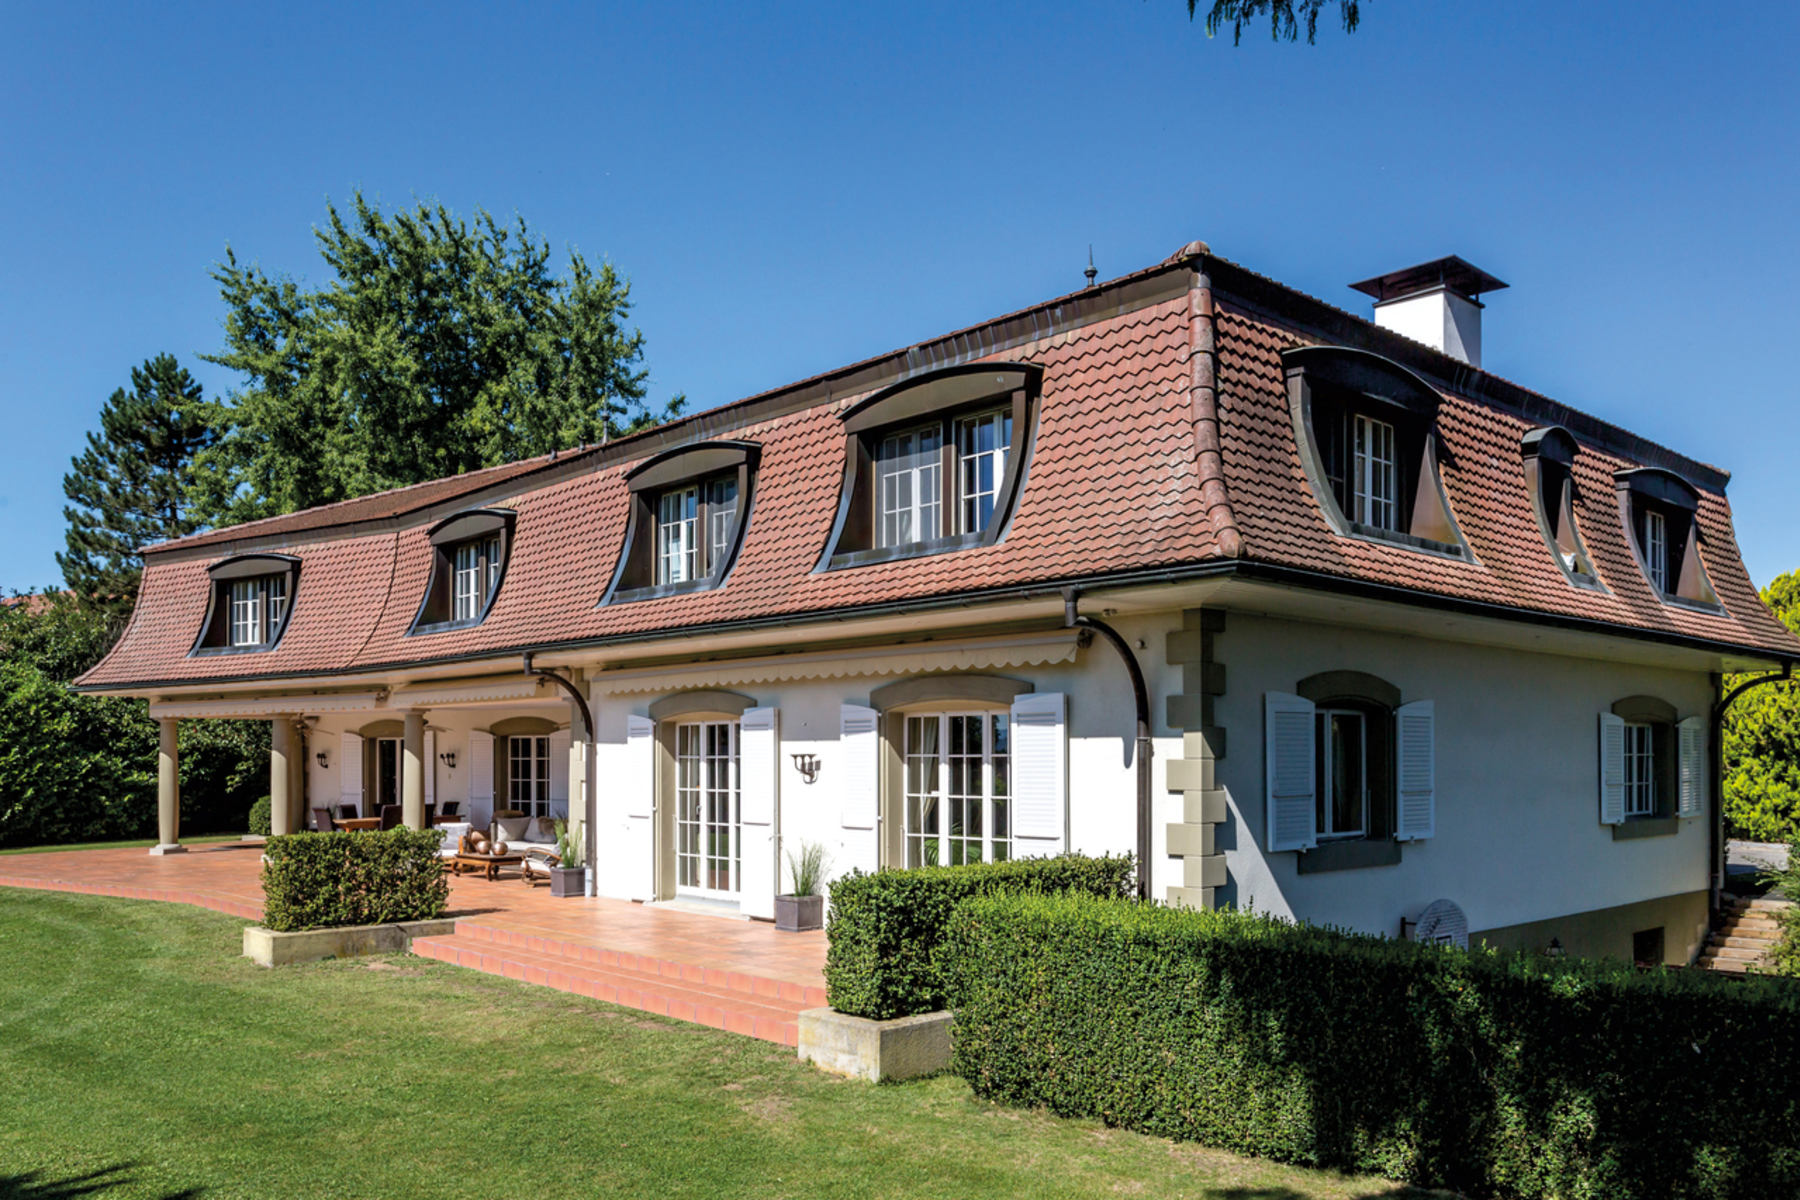 Single Family Home for Sale at Prestigious mansion on the edge of town Neyruz Neyruz, Fribourg, 1740 Switzerland